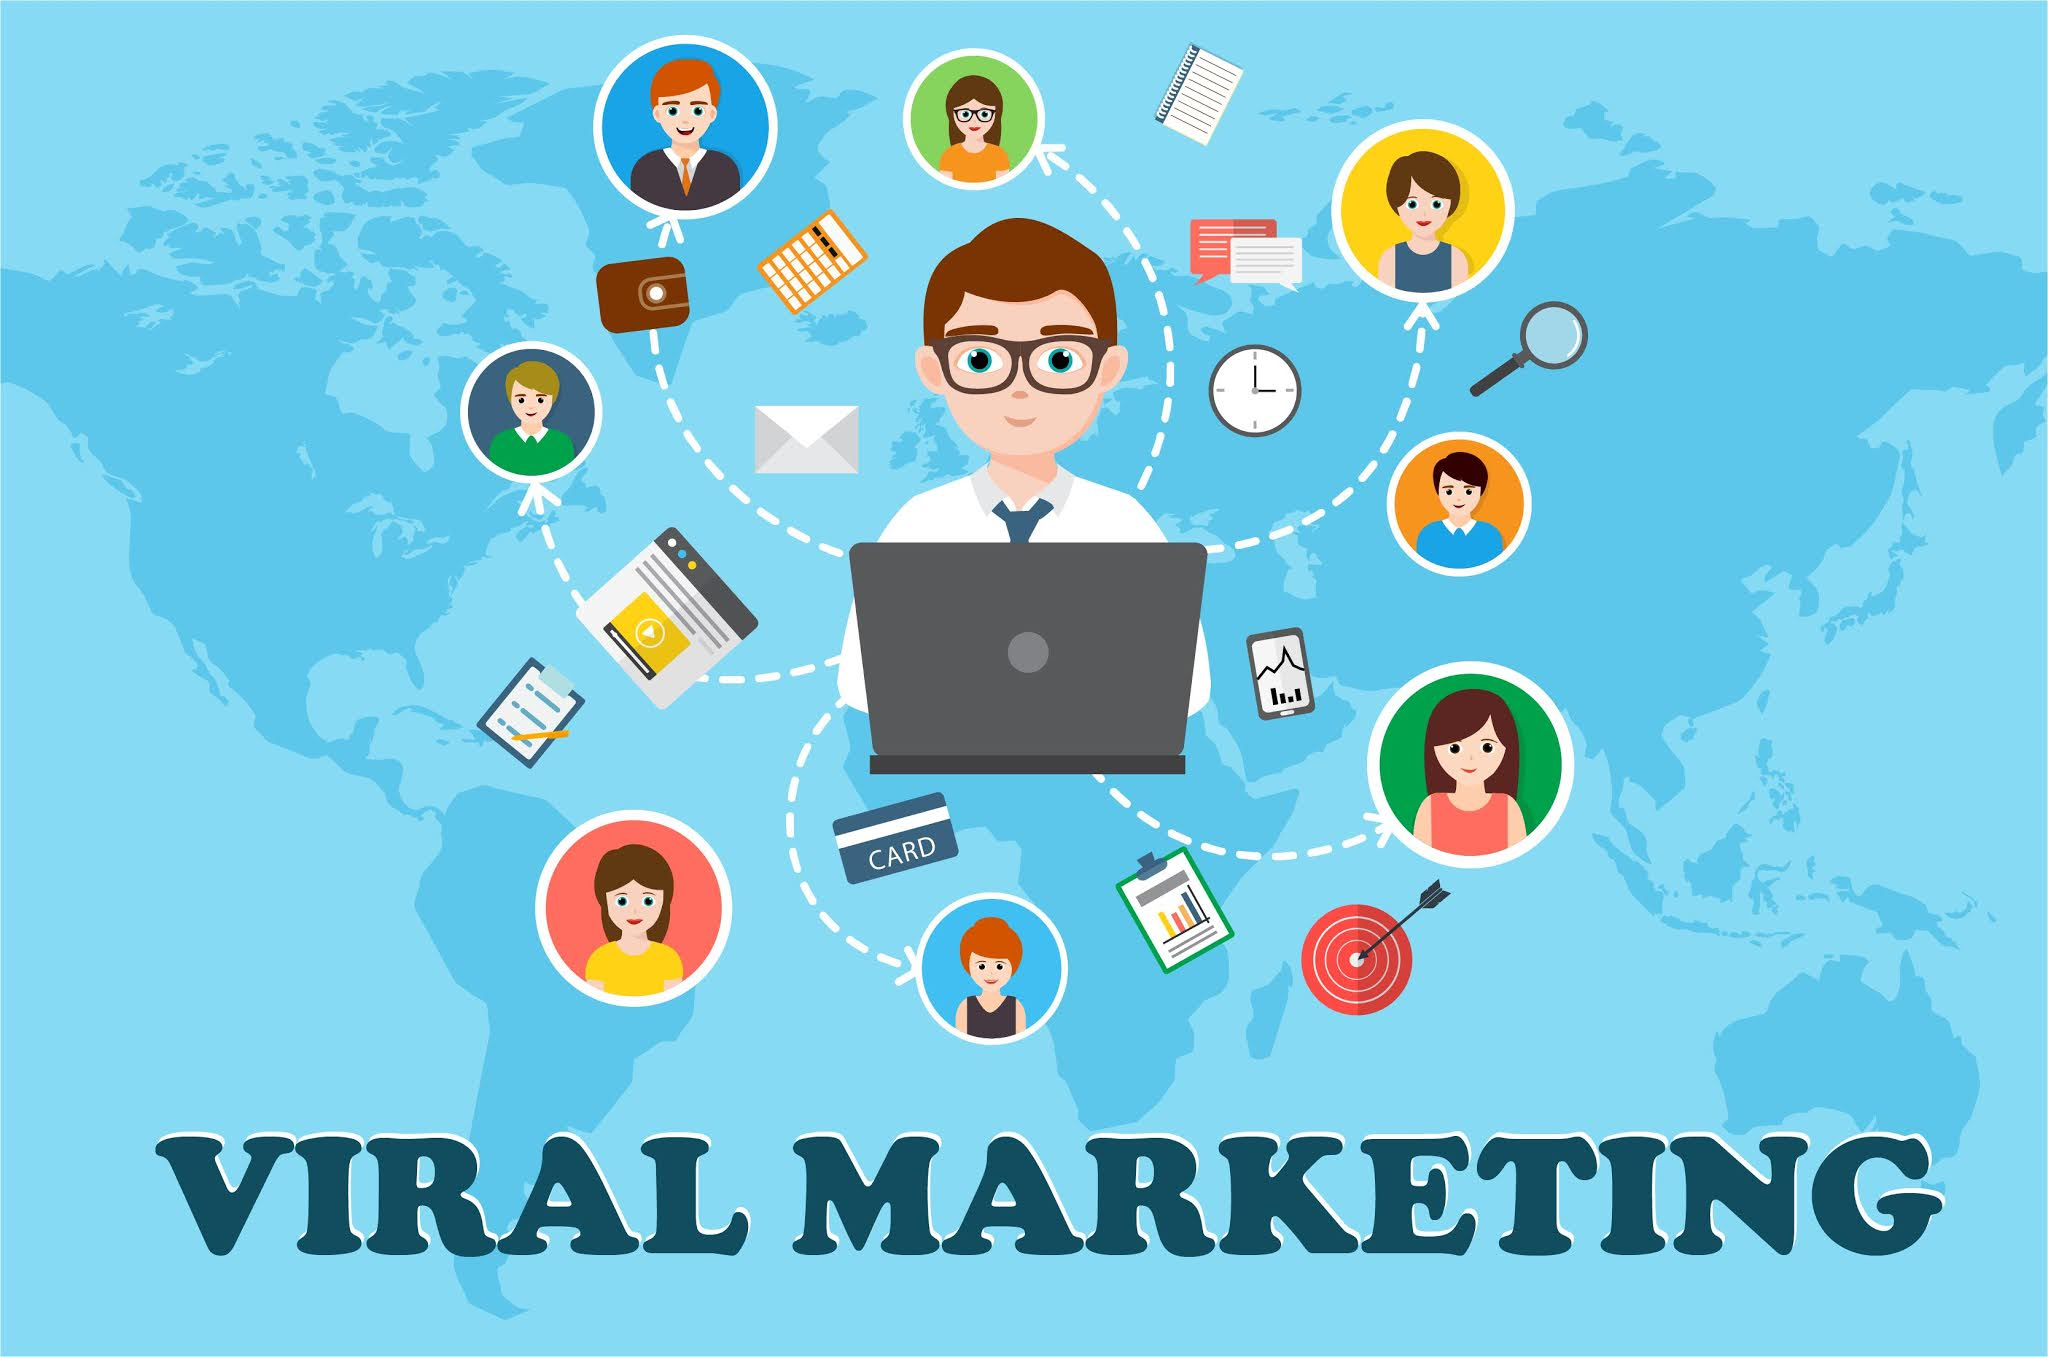 What Is Viral Marketing and What Can It Do For Me?